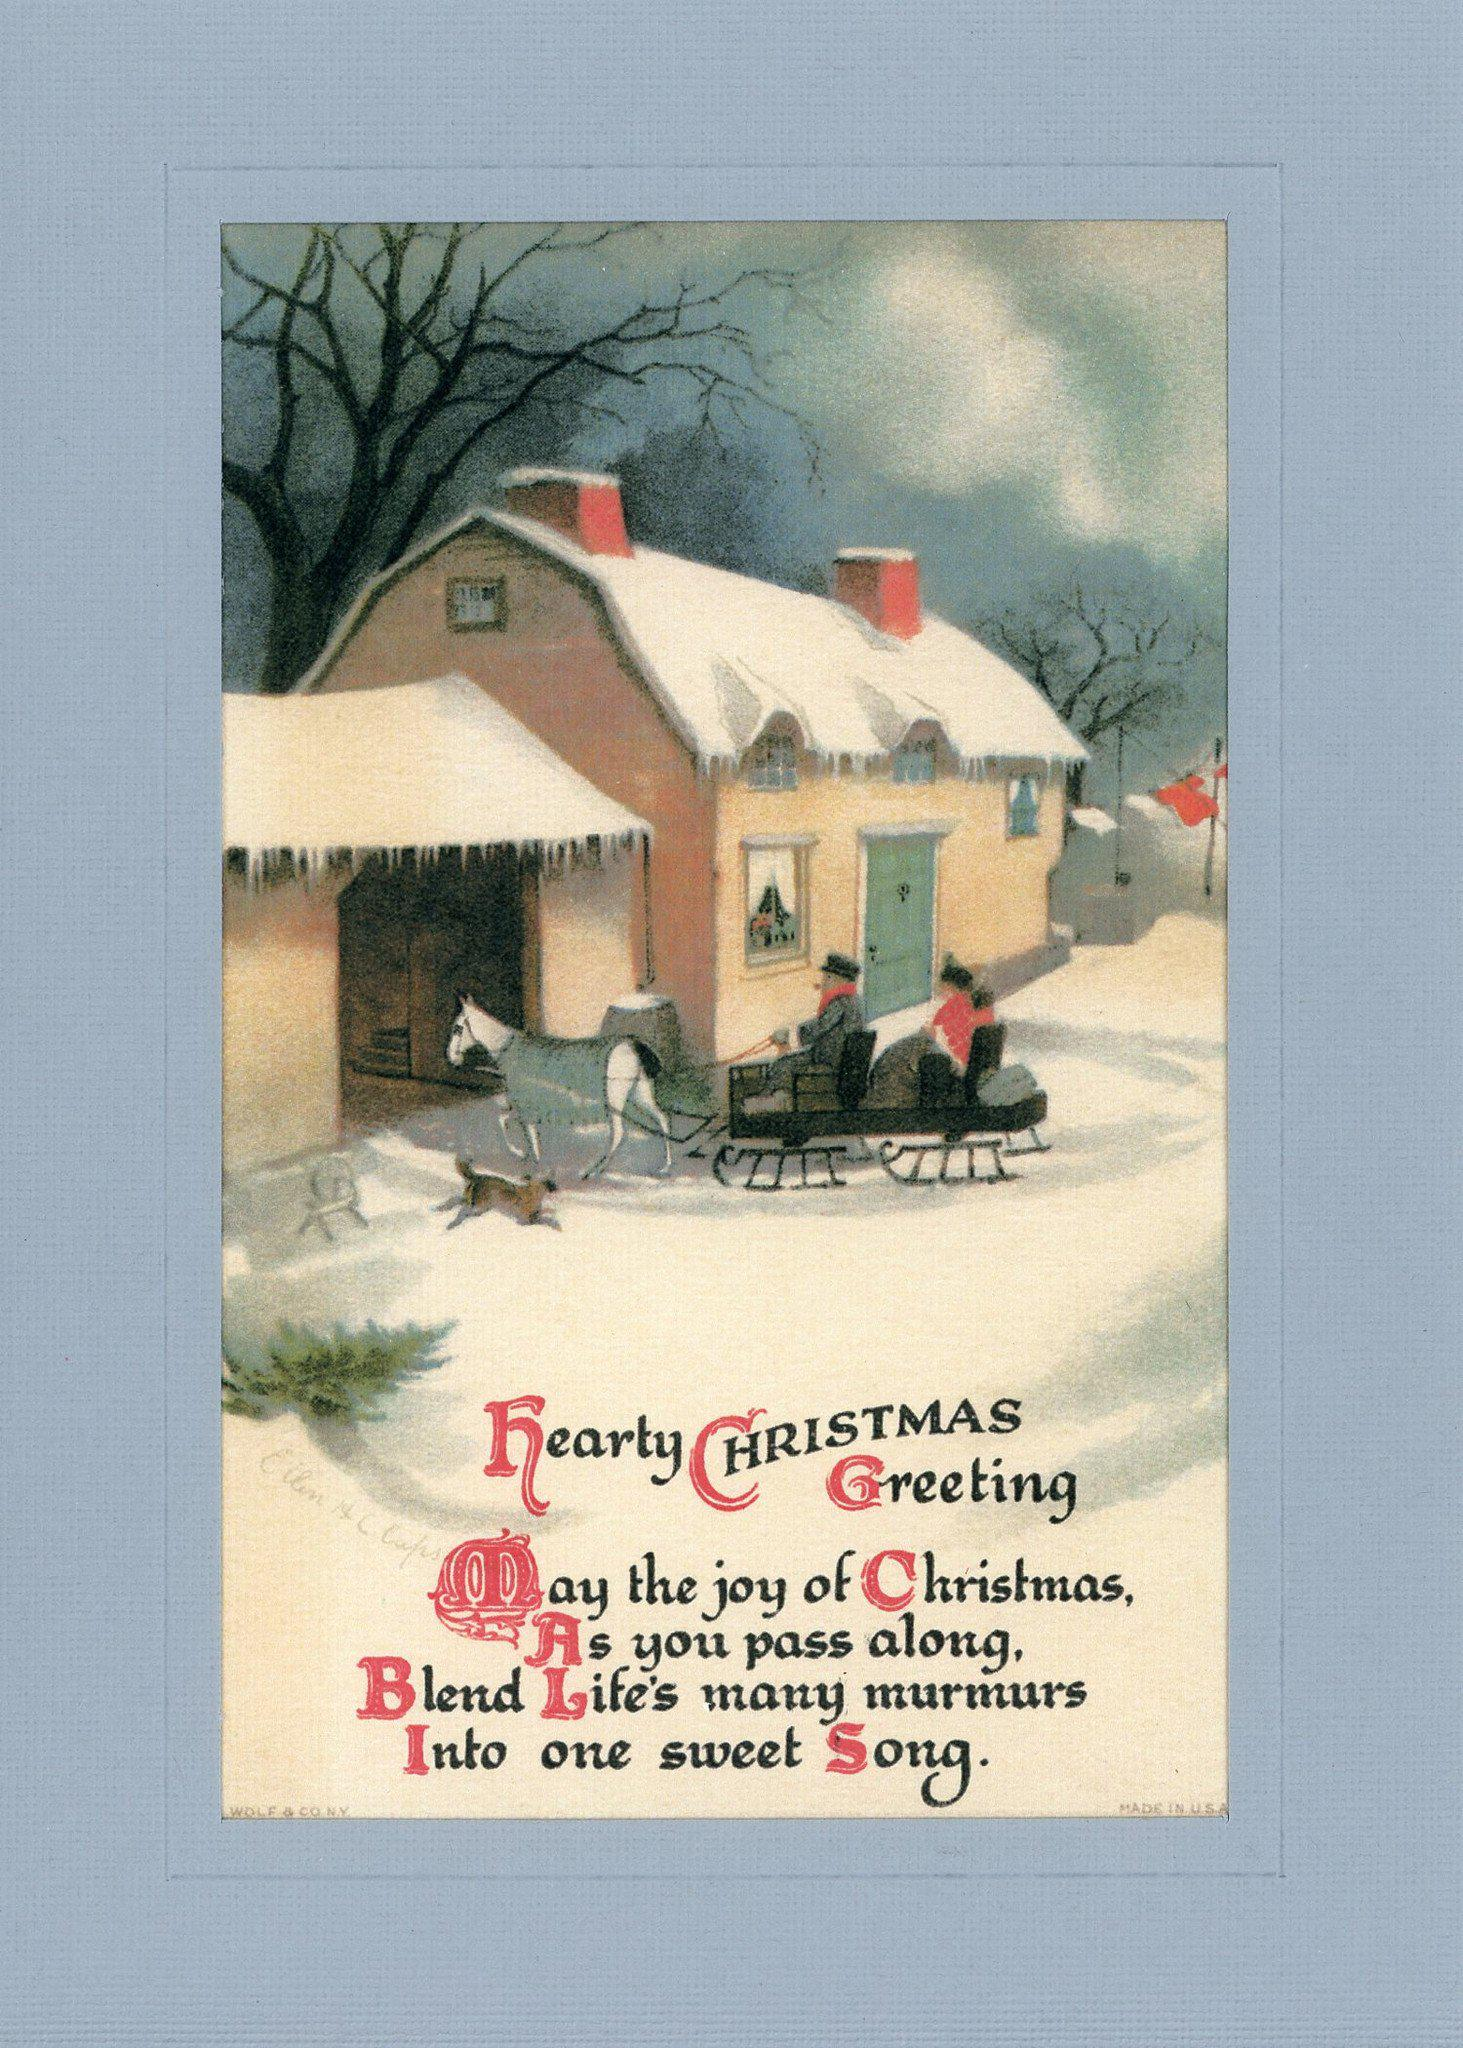 Hearty Christmas Greeting-Greetings from the Past-Plymouth Cards